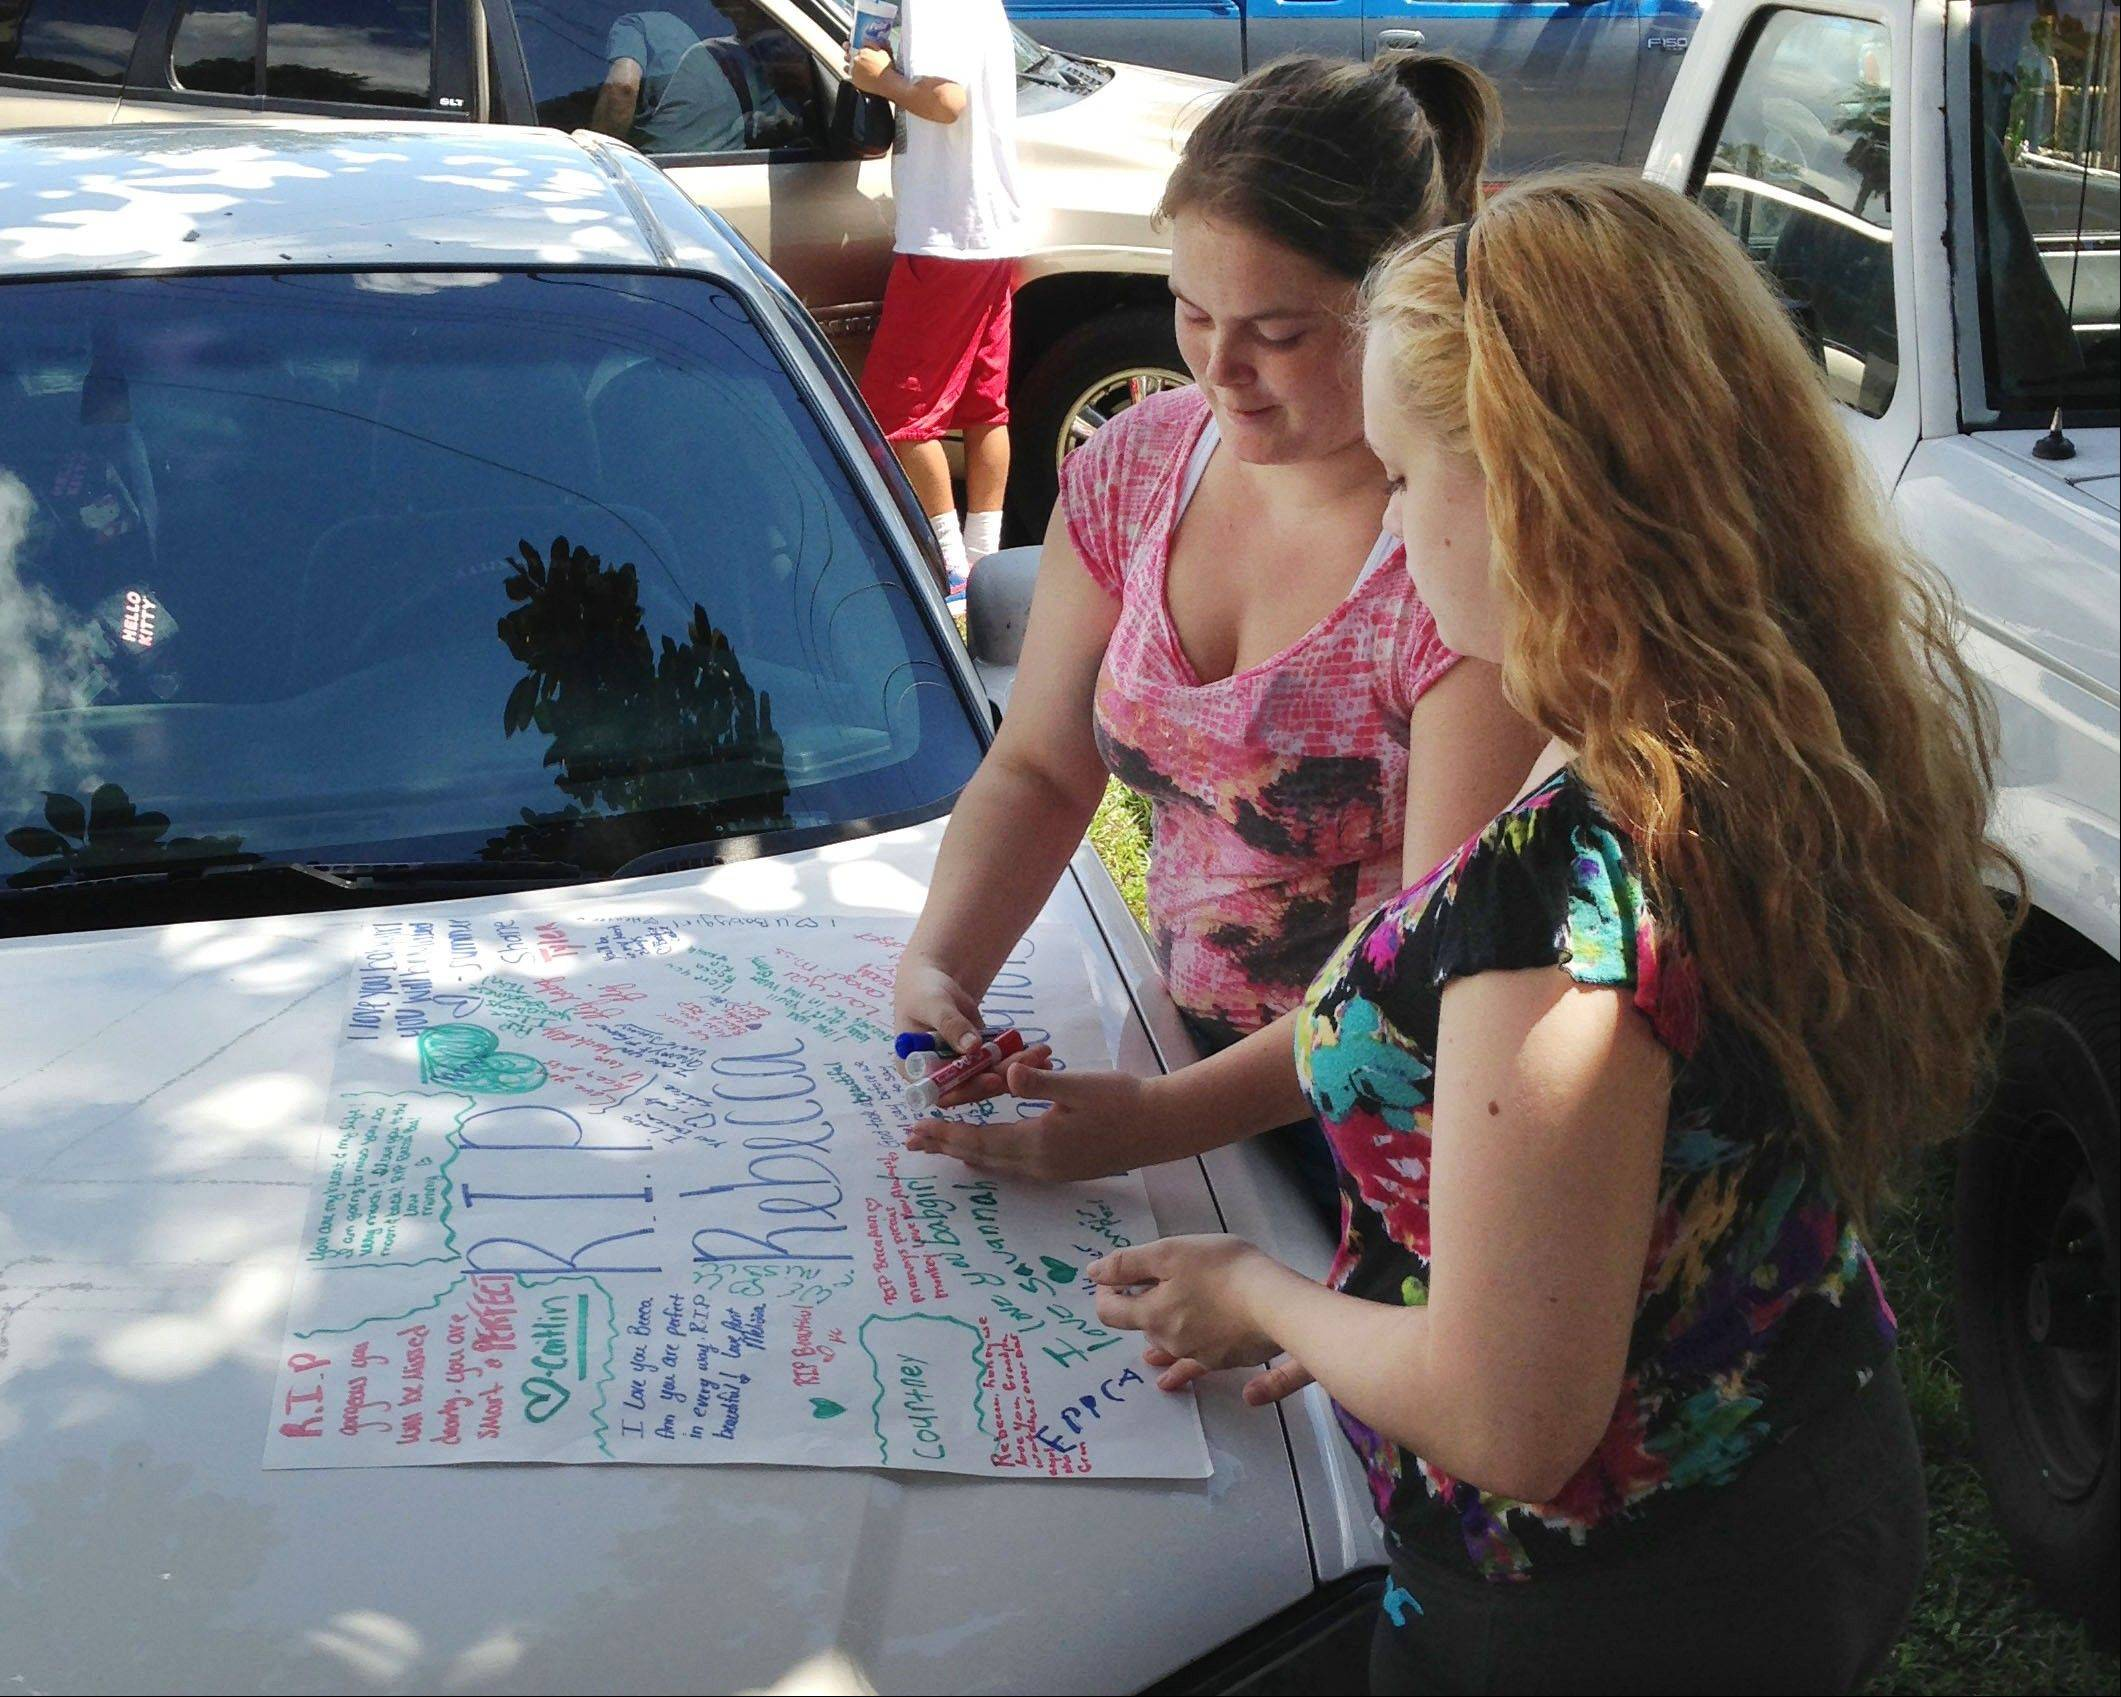 Summer Howard, 19 and Alecia Wilkins, 18, make a poster for Summer's sister Rebecca Sedwick. Polk County Sheriff Grady Judd said that Sedwick jumped to her death on on Monday at an old cement business in Lakeland, Fla.